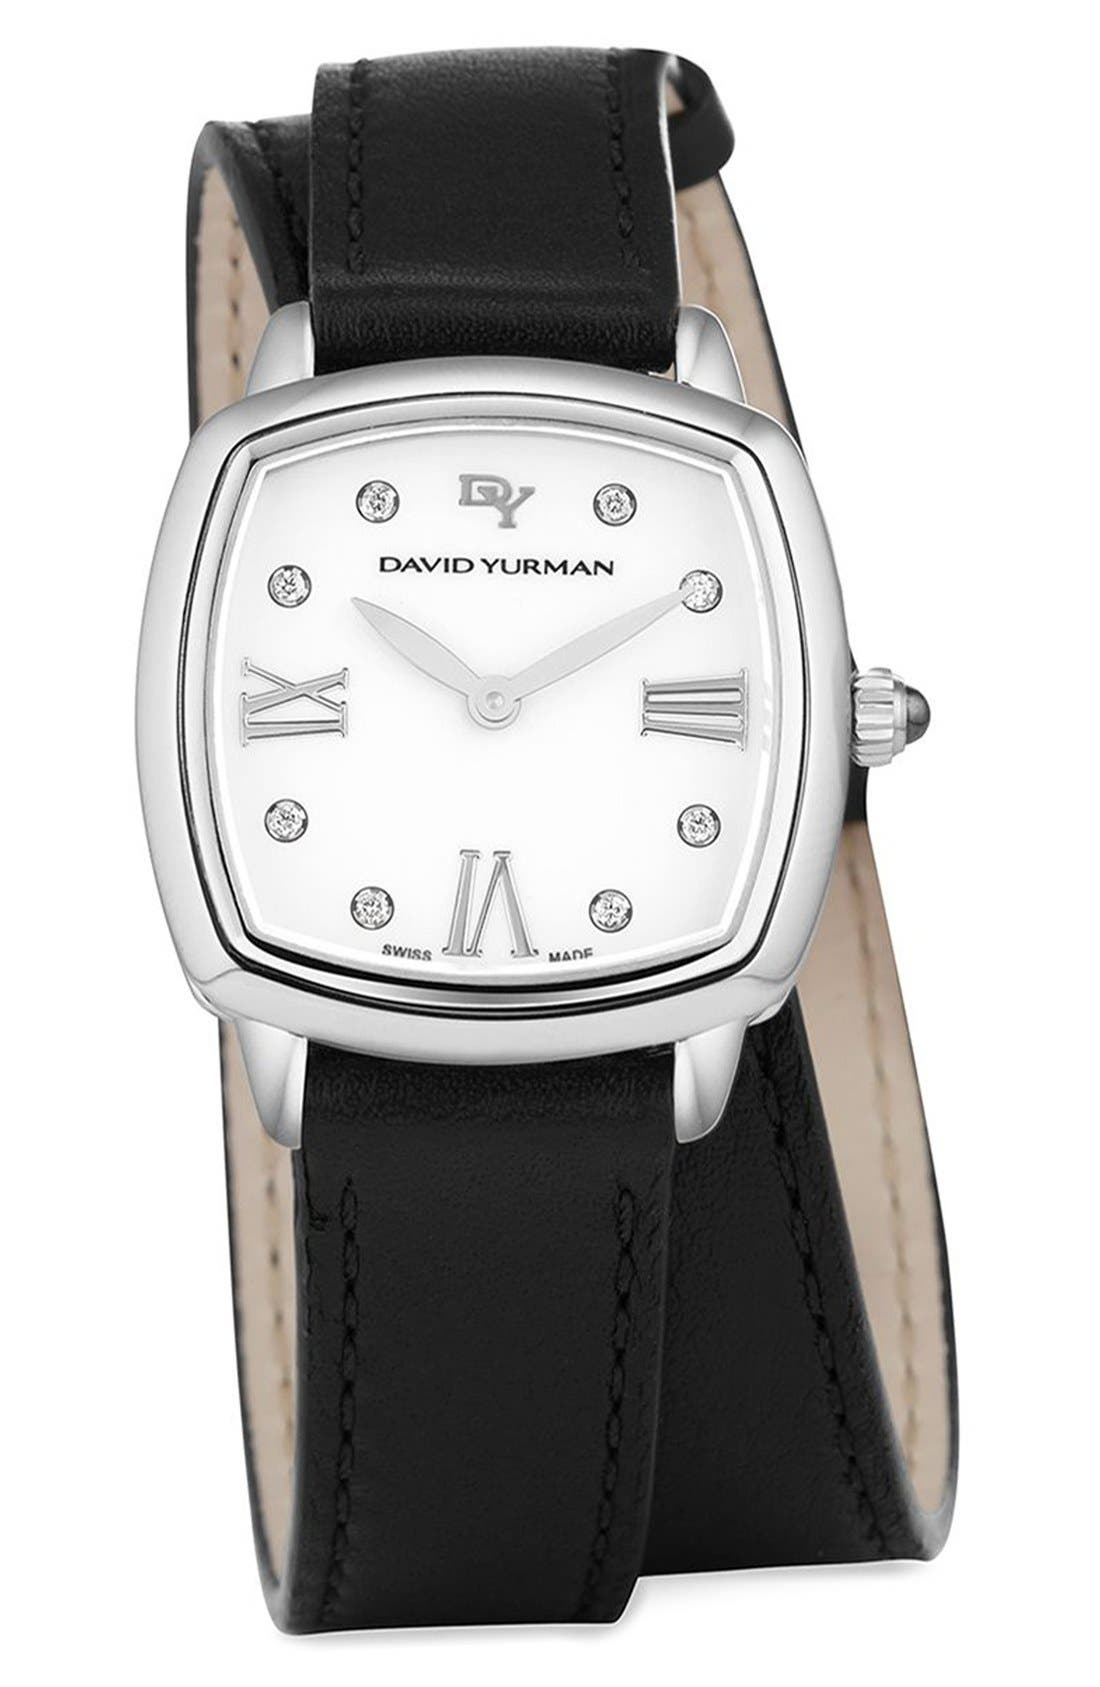 David Yurman 'Albion' 27mm Leather Swiss Quartz Watch with Diamonds